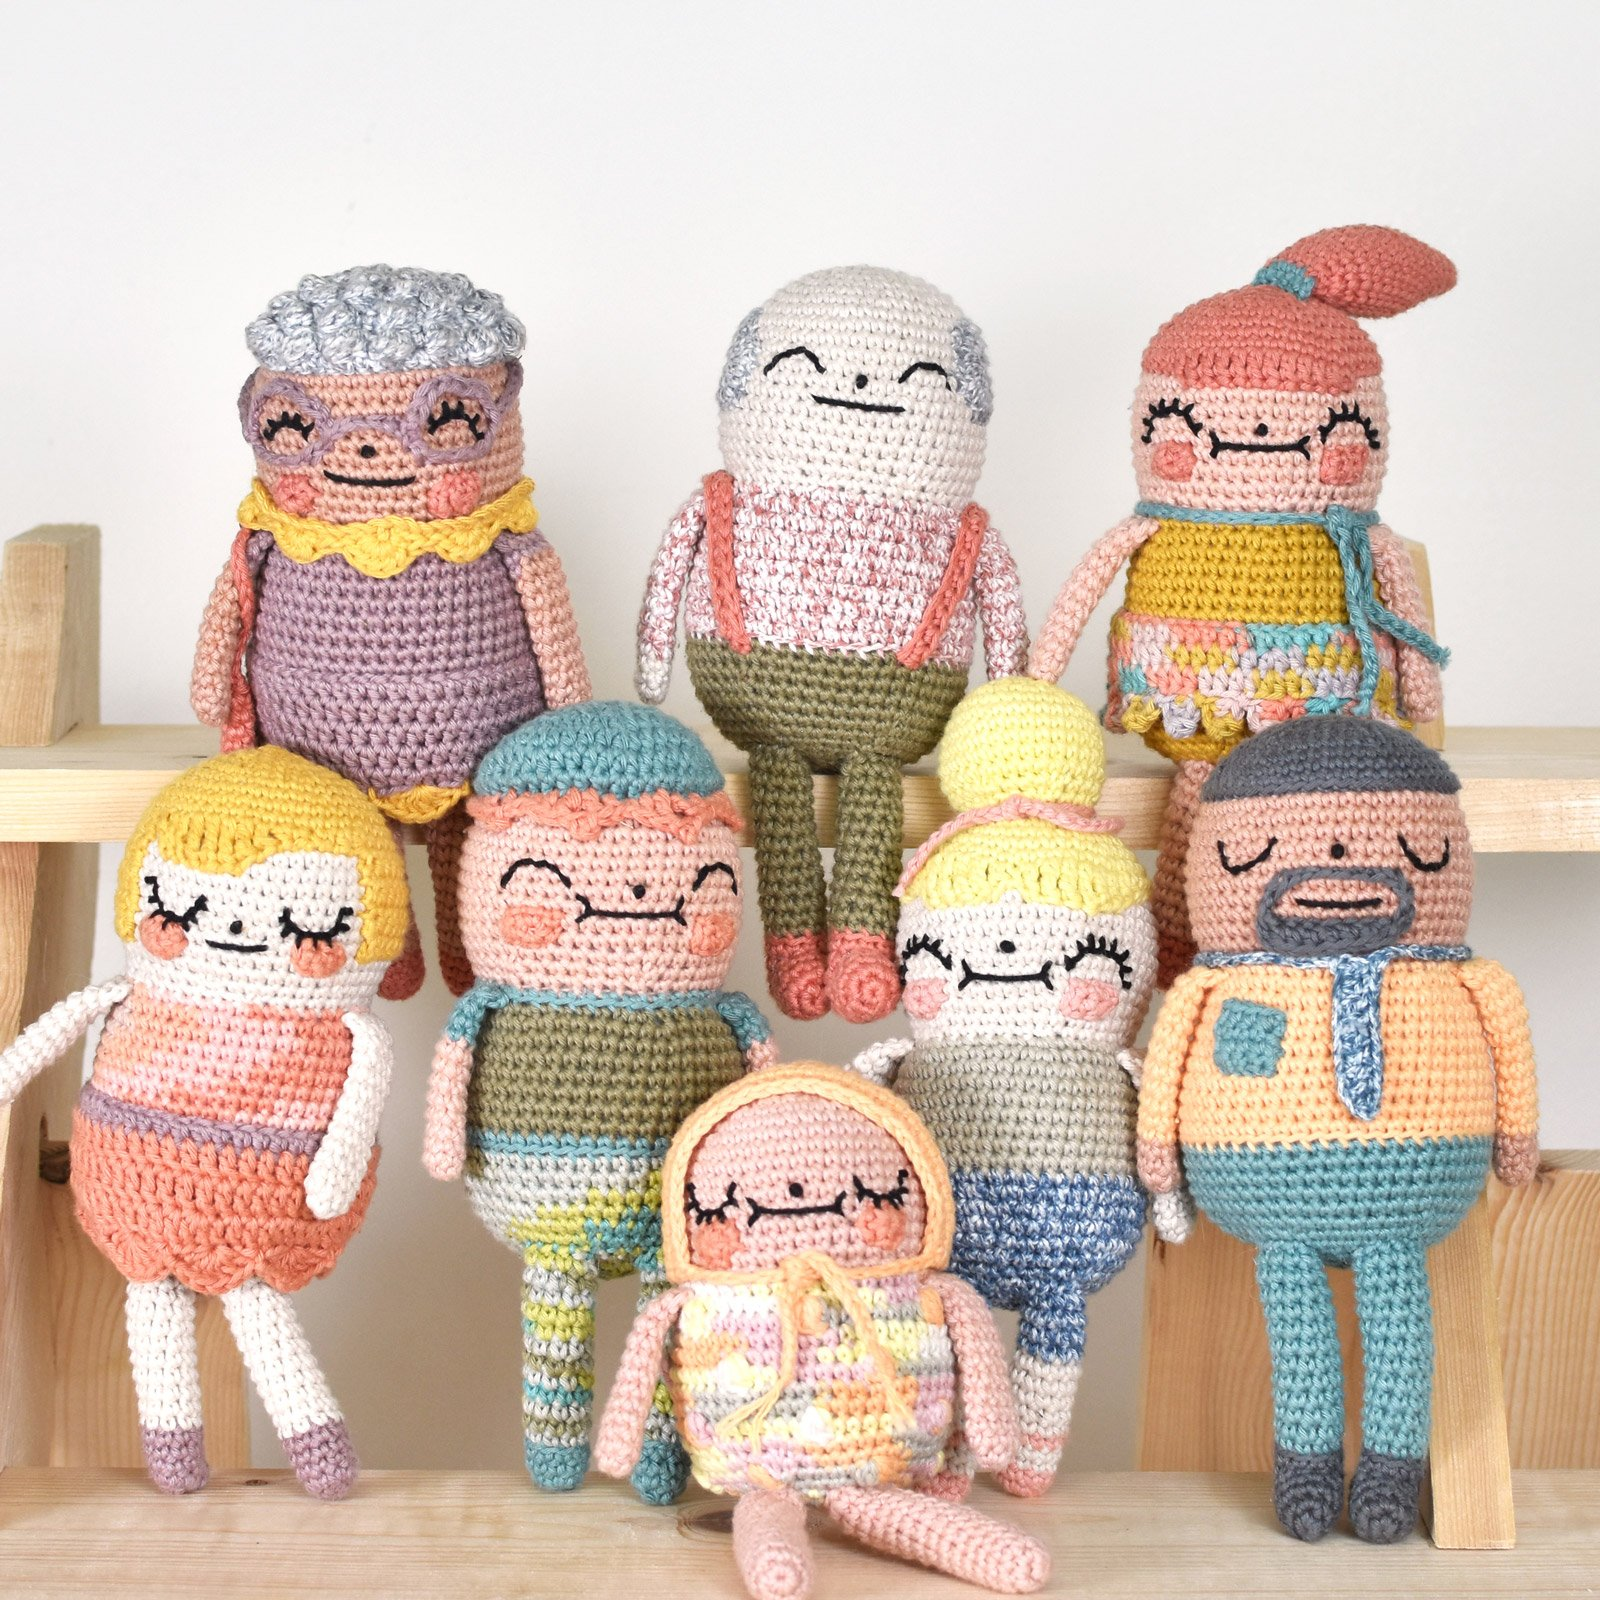 A group photo of the crochet family.